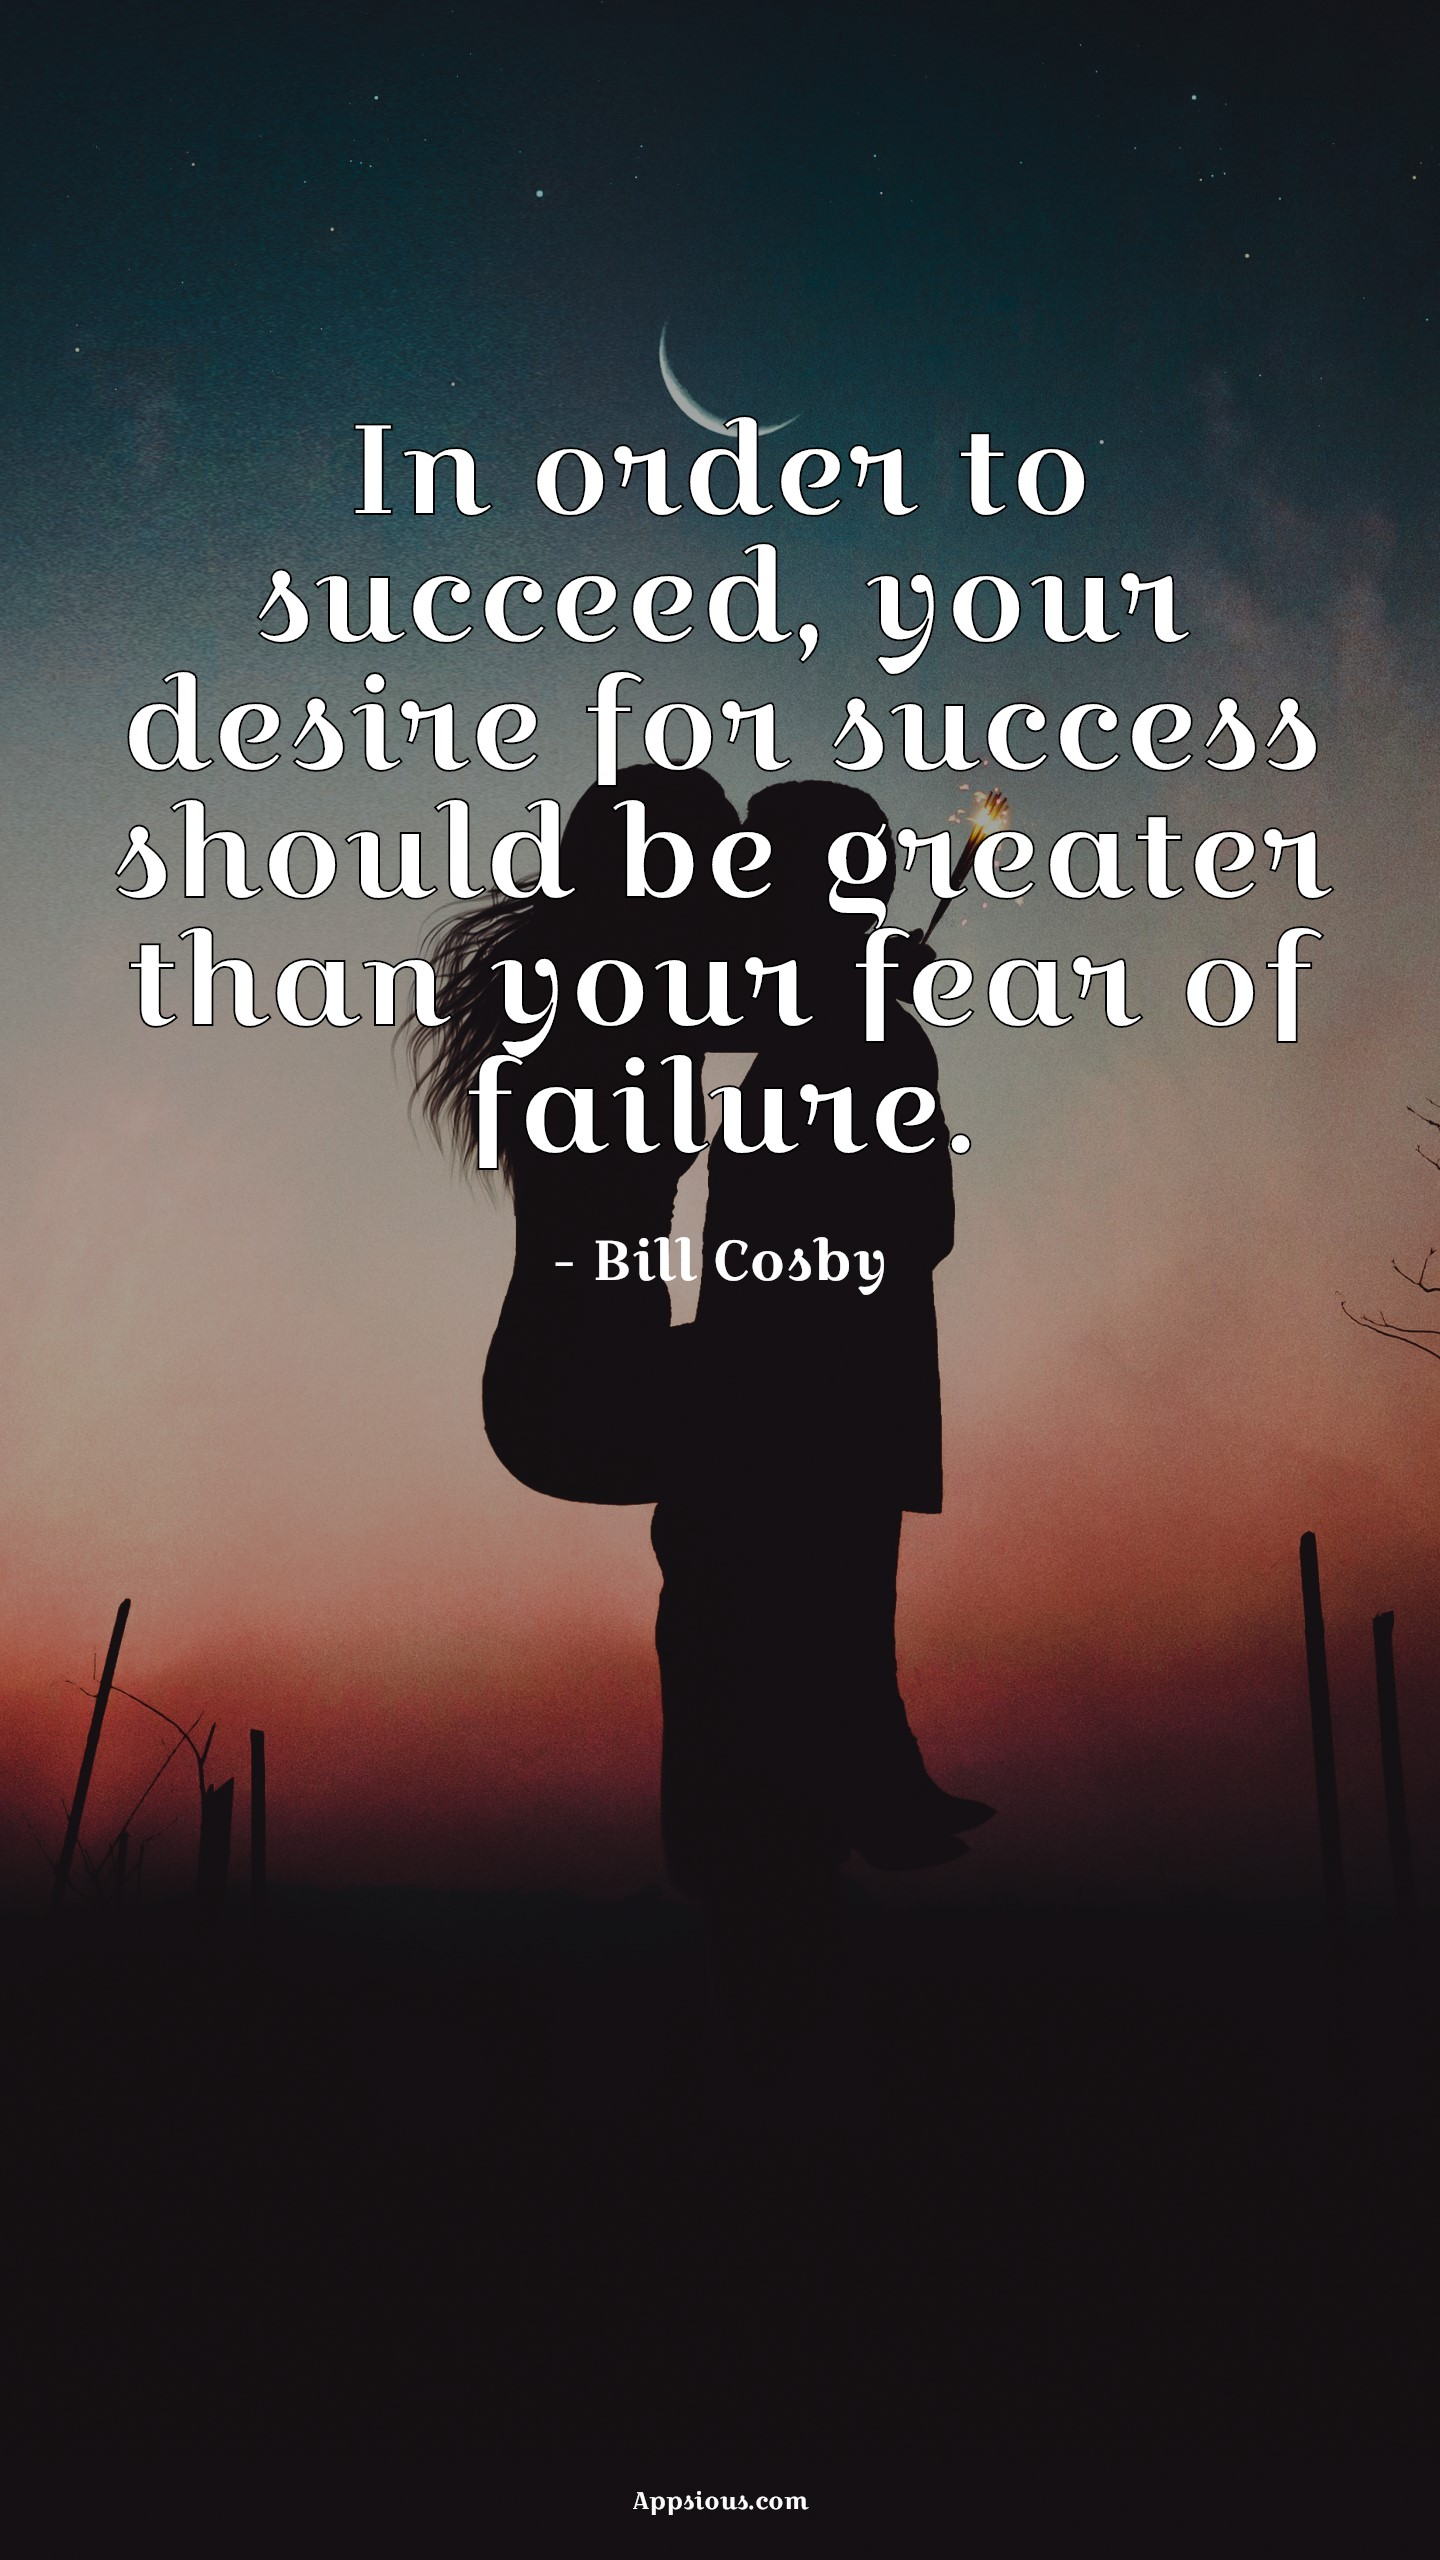 In order to succeed, your desire for success should be greater than your fear of failure.